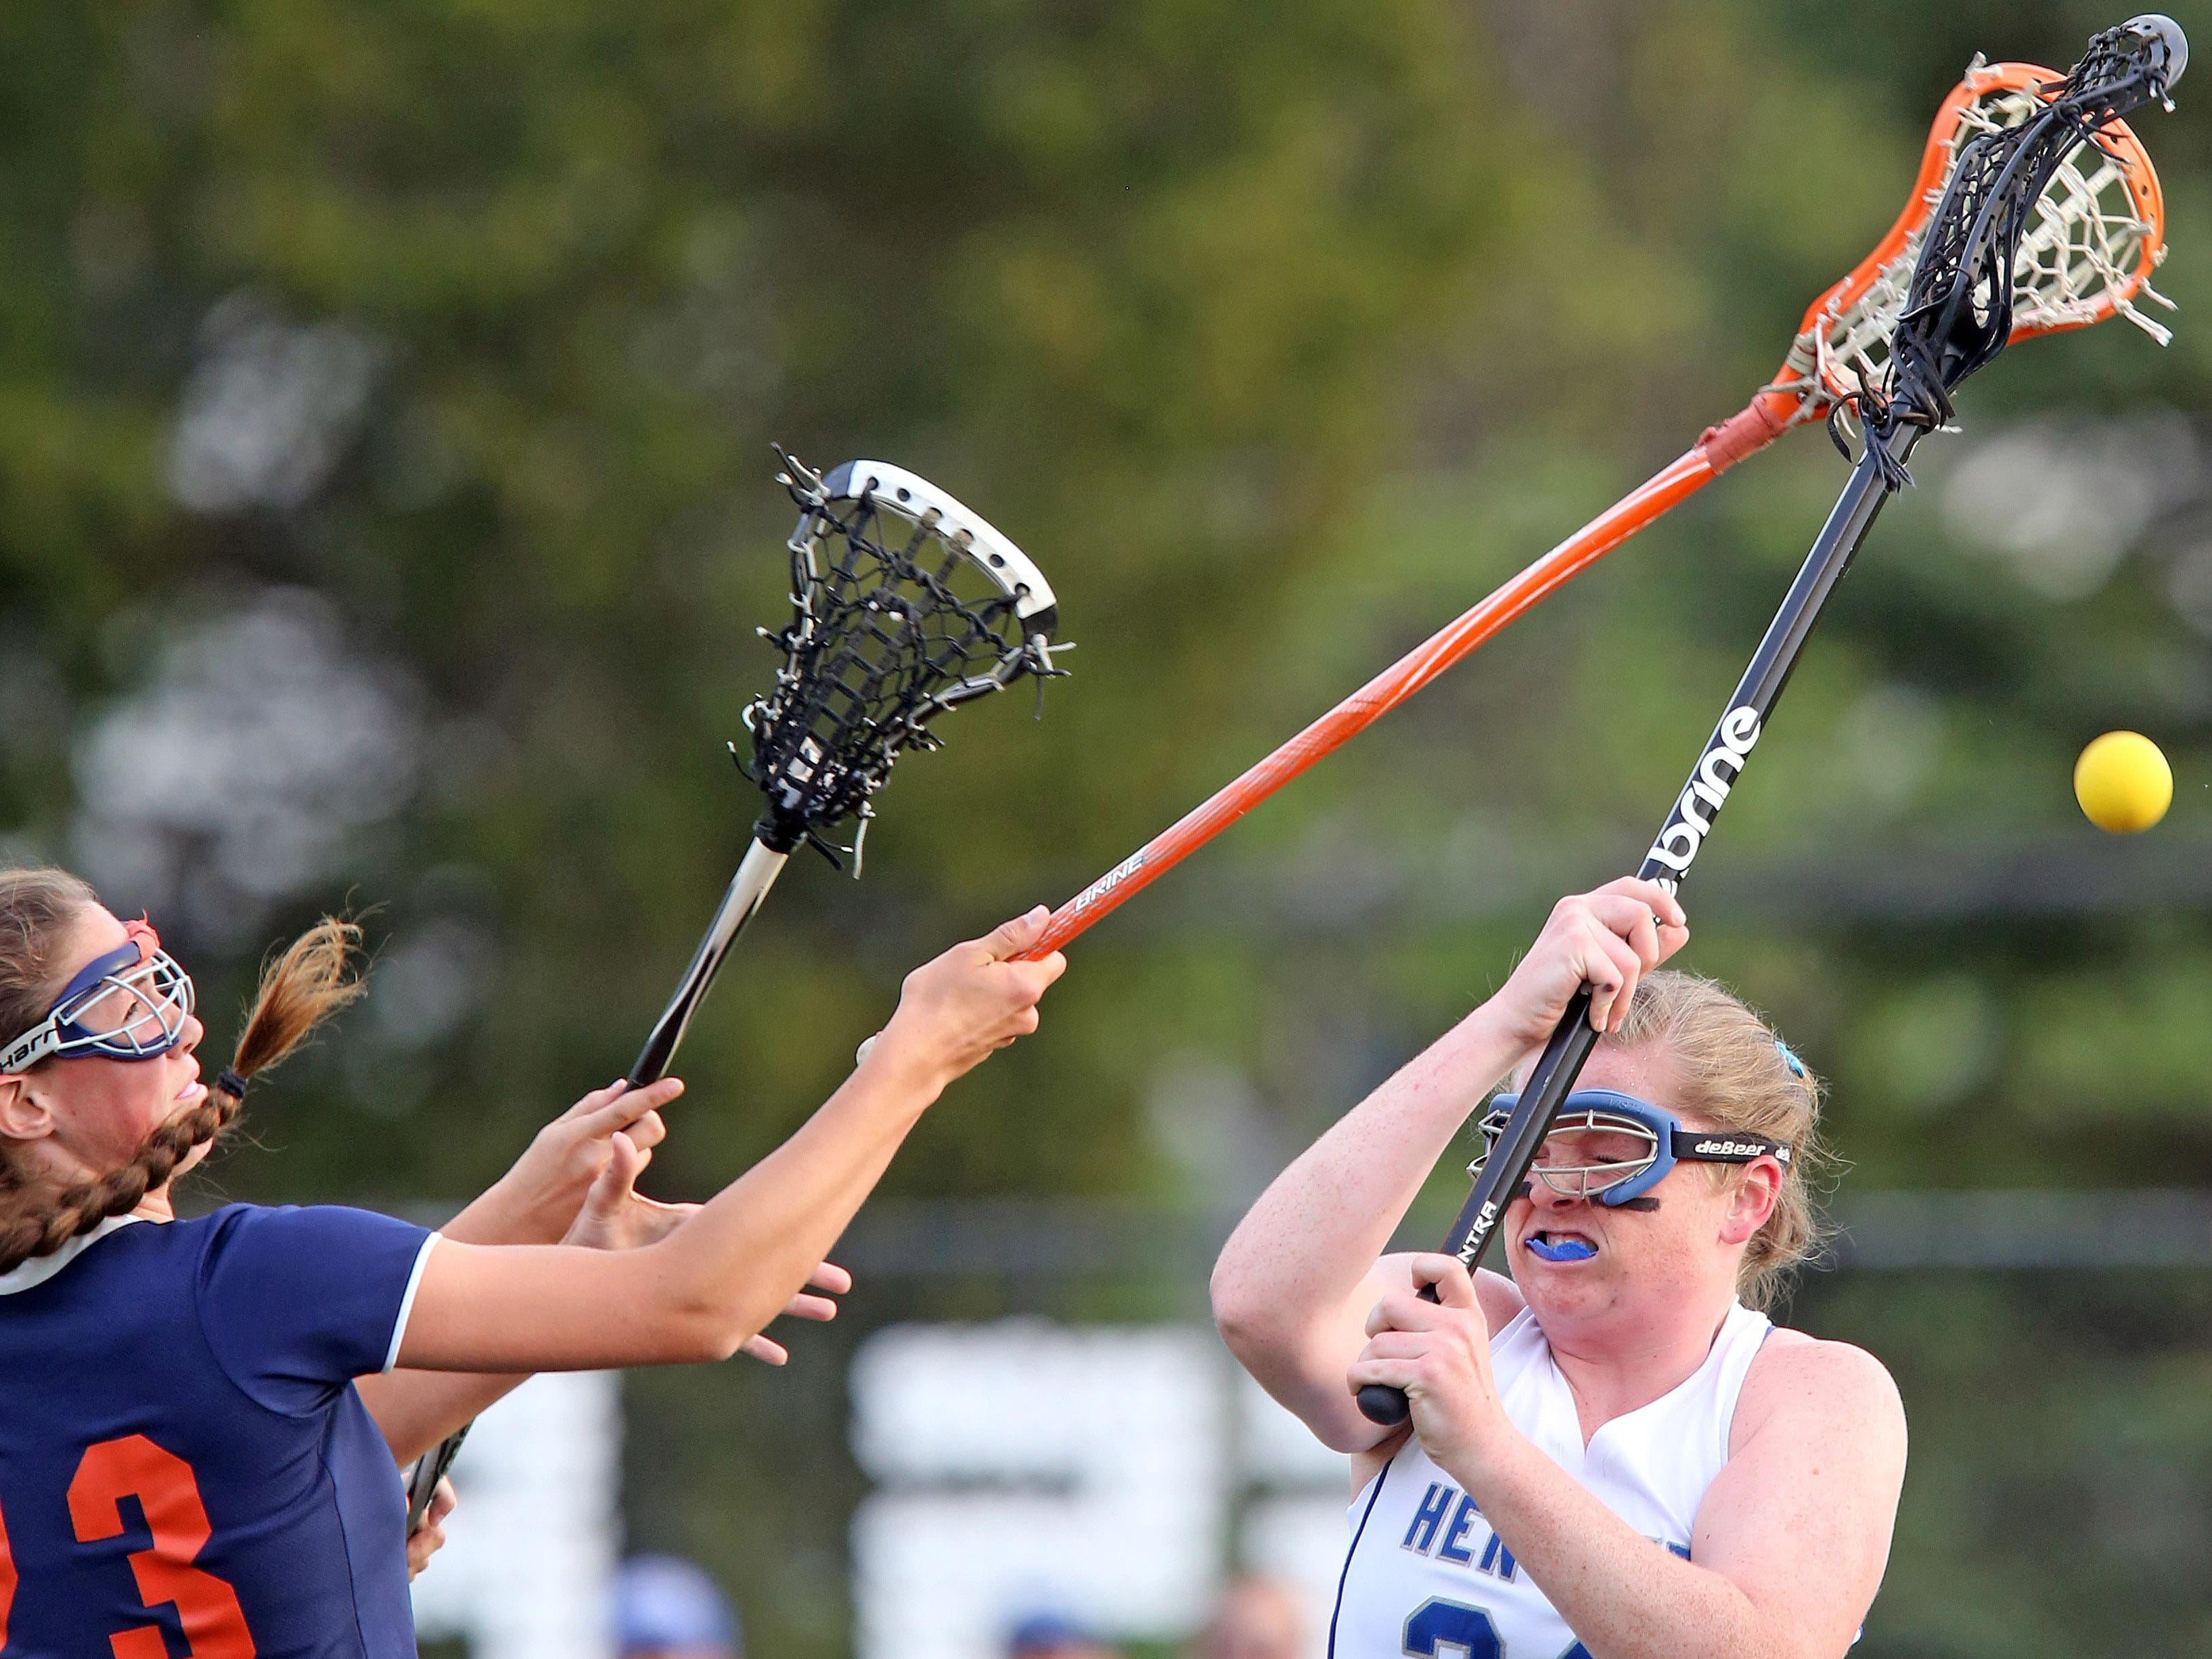 Briarcliff's Kelly O'Donnell (23) knocks the ball away from Hendrick Hudson's Jill Reiner (24) during girls lacrosse game at Hendrick Hudson High School in Montrose May 11, 2016.